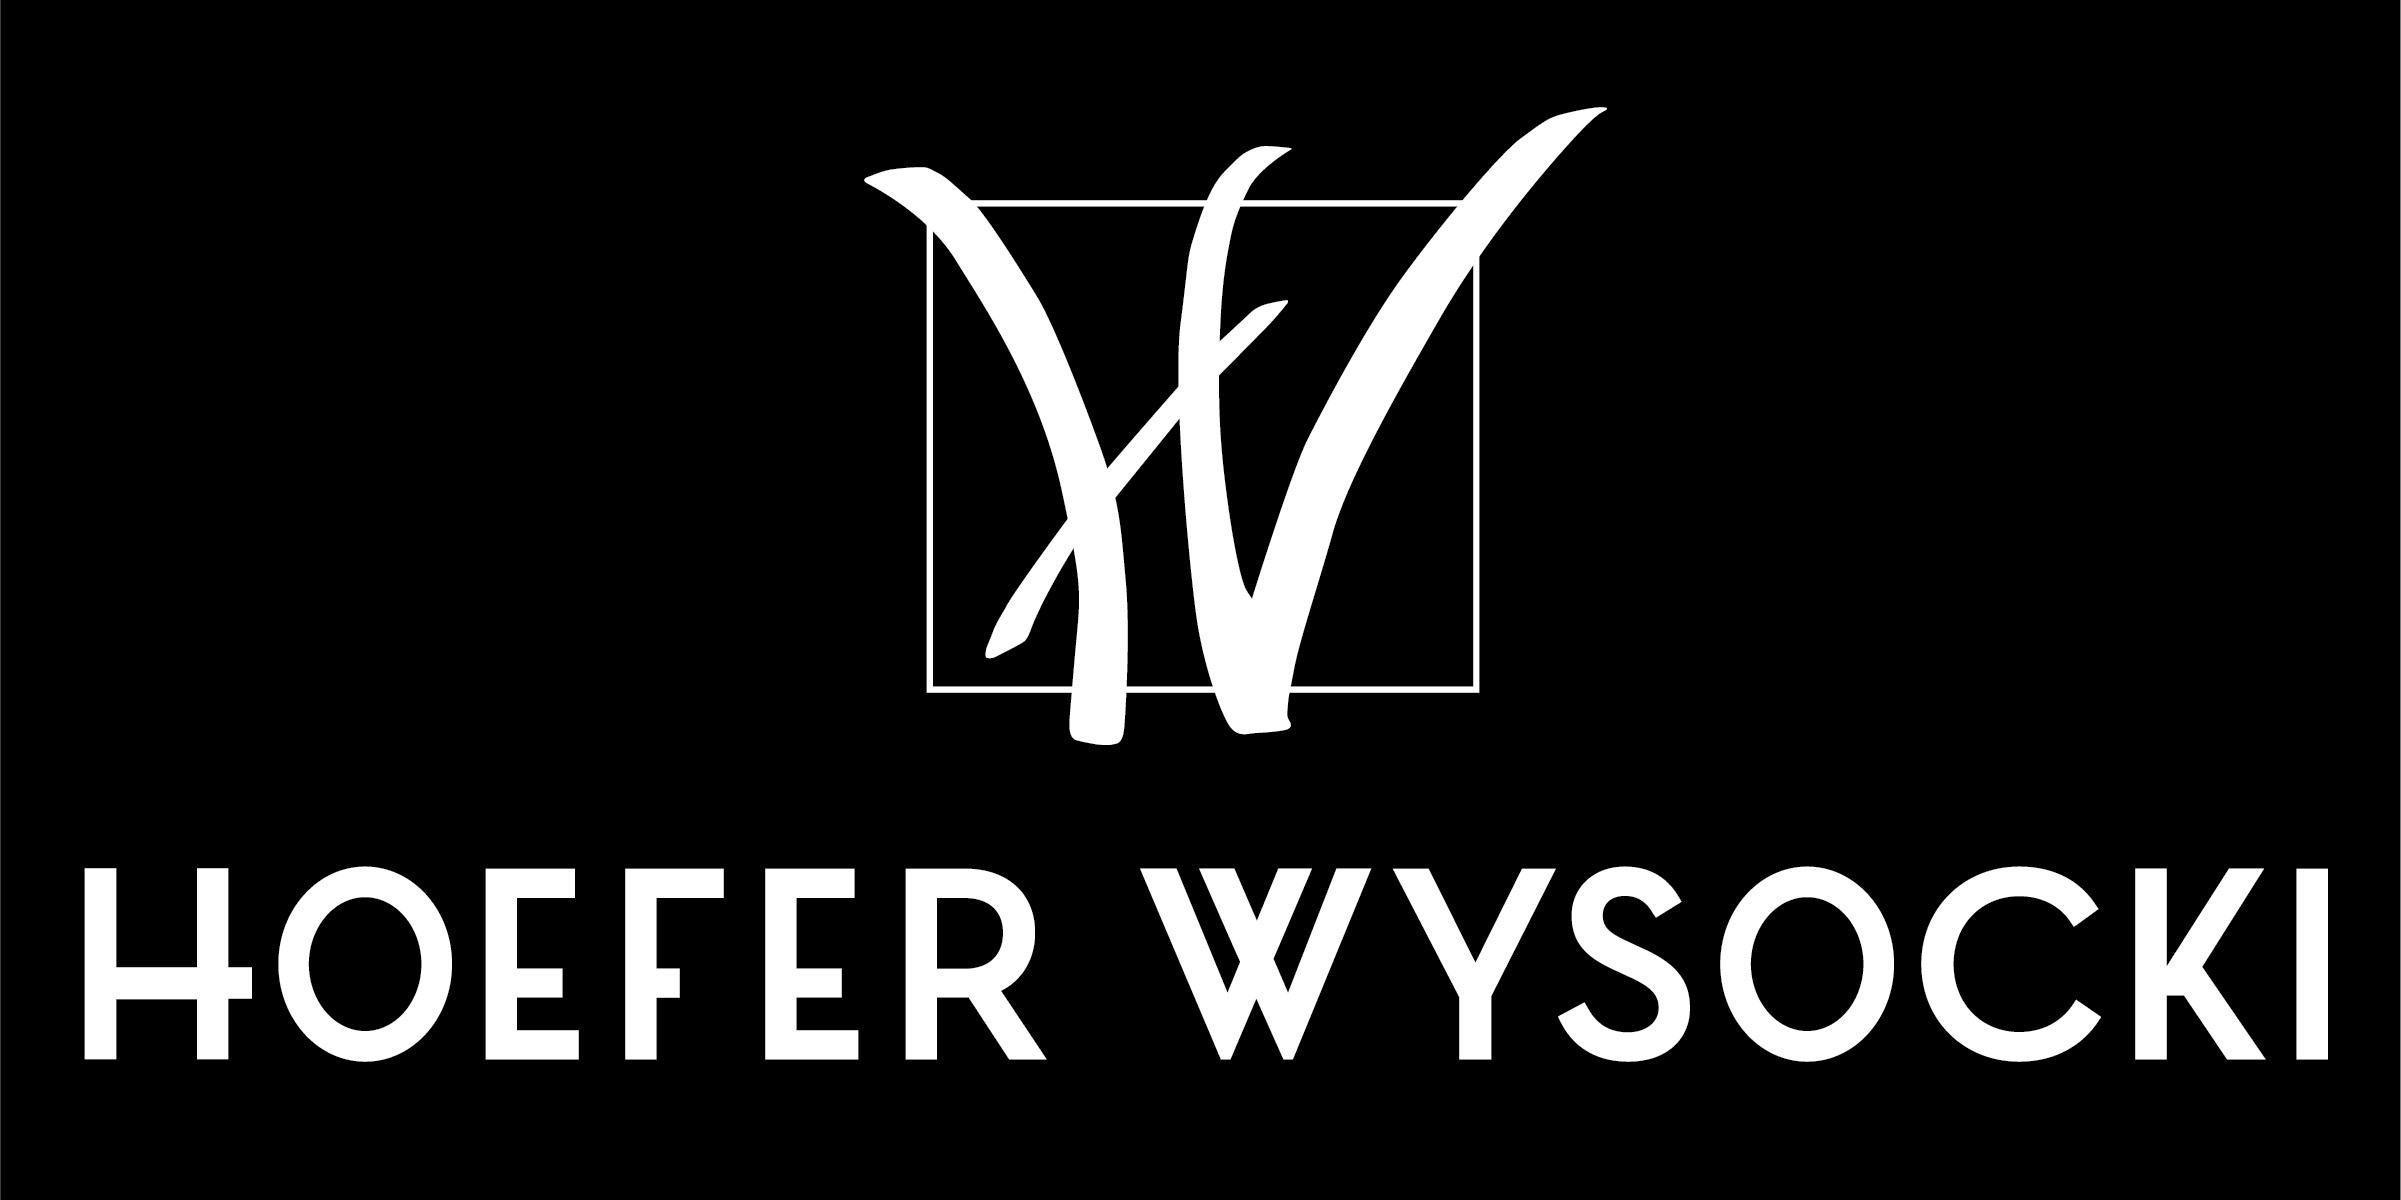 Holiday Party: Hoefer Wysocki logo